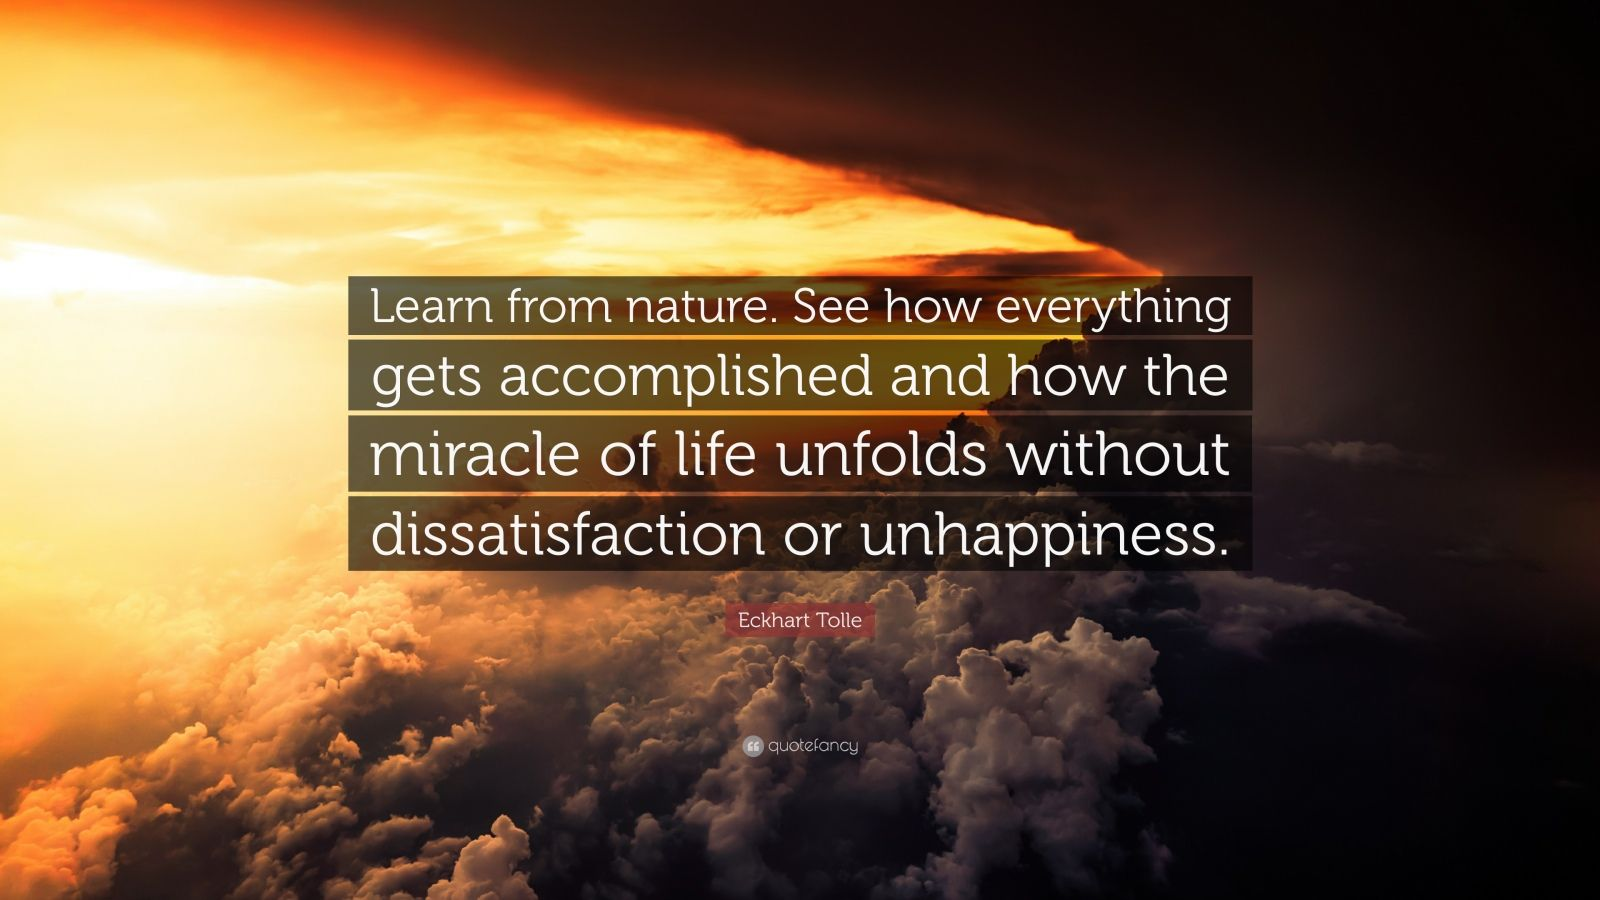 """Eckhart Tolle Quote: """"Learn from nature. See how everything gets accomplished and how the miracle of life unfolds without dissatisfaction or unhappiness."""""""